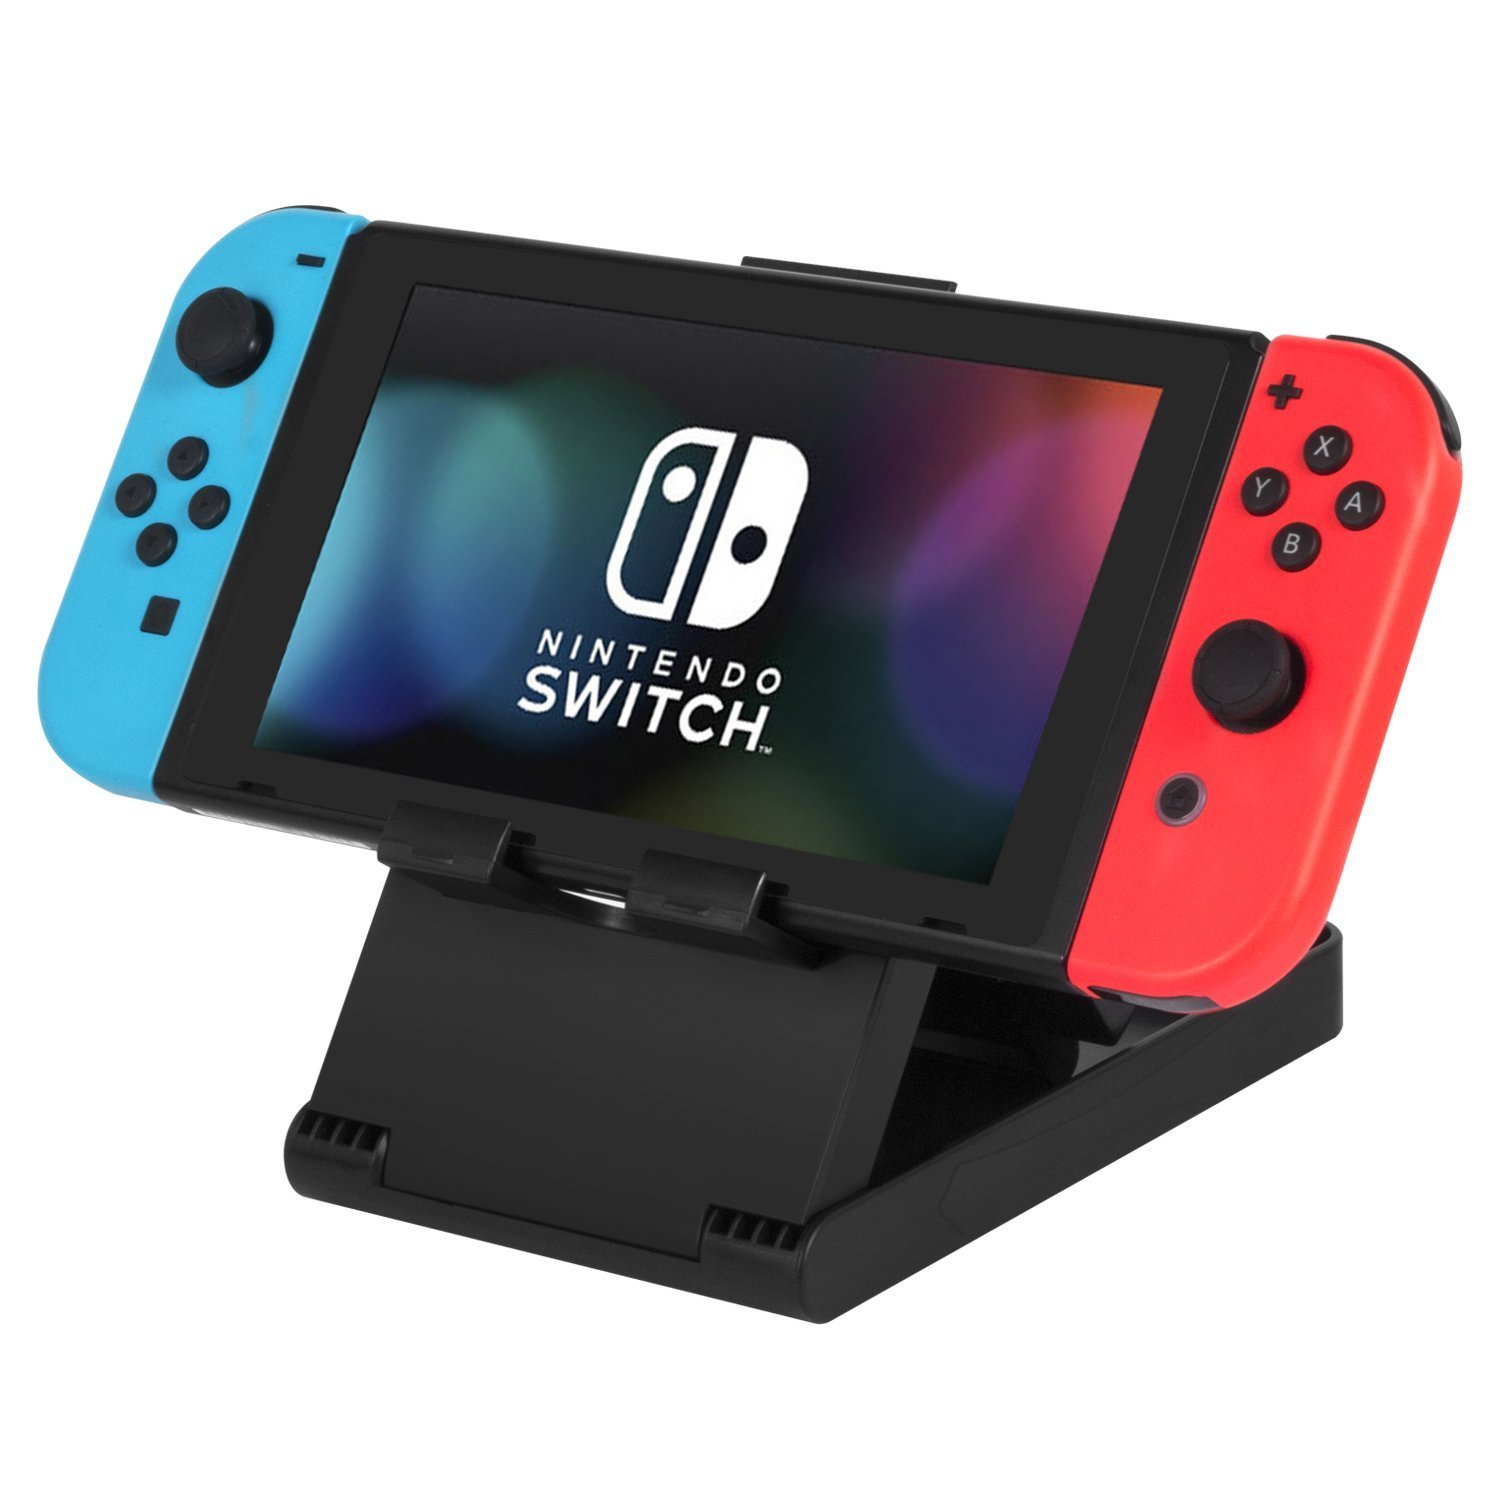 Nintendo Switch Stand – Younik Compact Adjustable Stand for Nintendo Switch product image